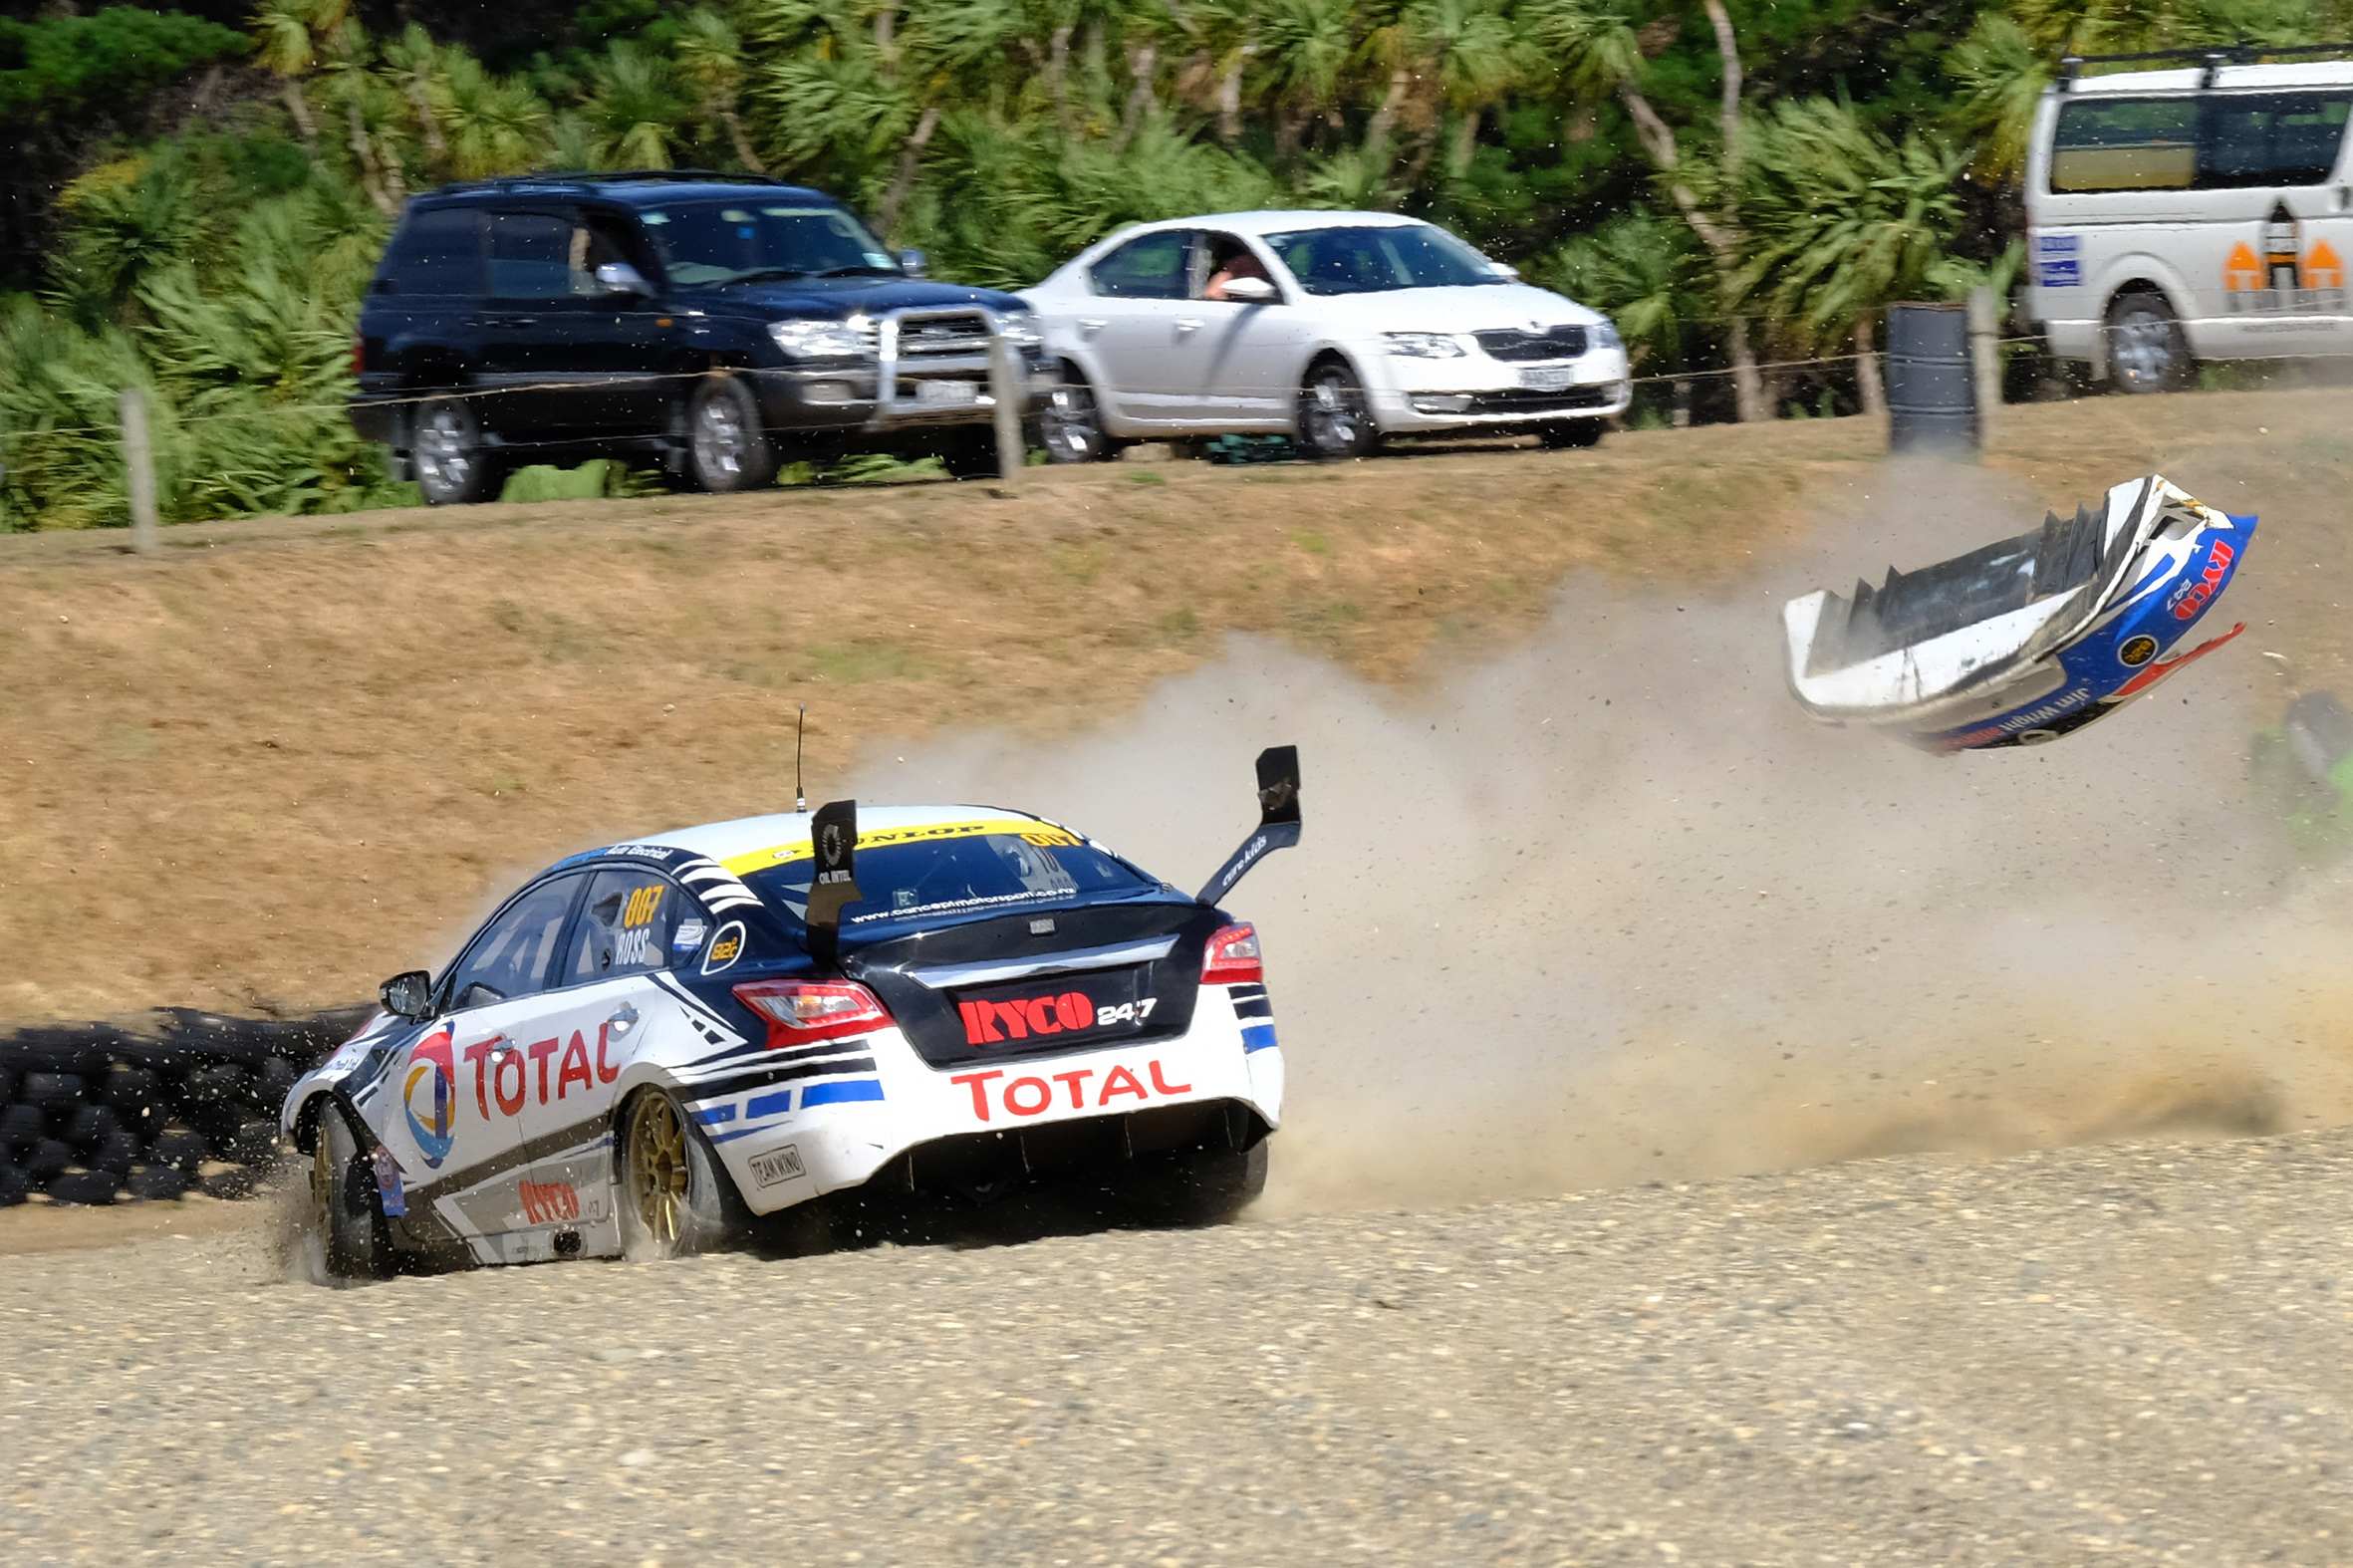 A scary moment for Nick Ross and his Total Lubricants Nissan Altima at Teretonga.  Photo Credit Geoff Ridder.